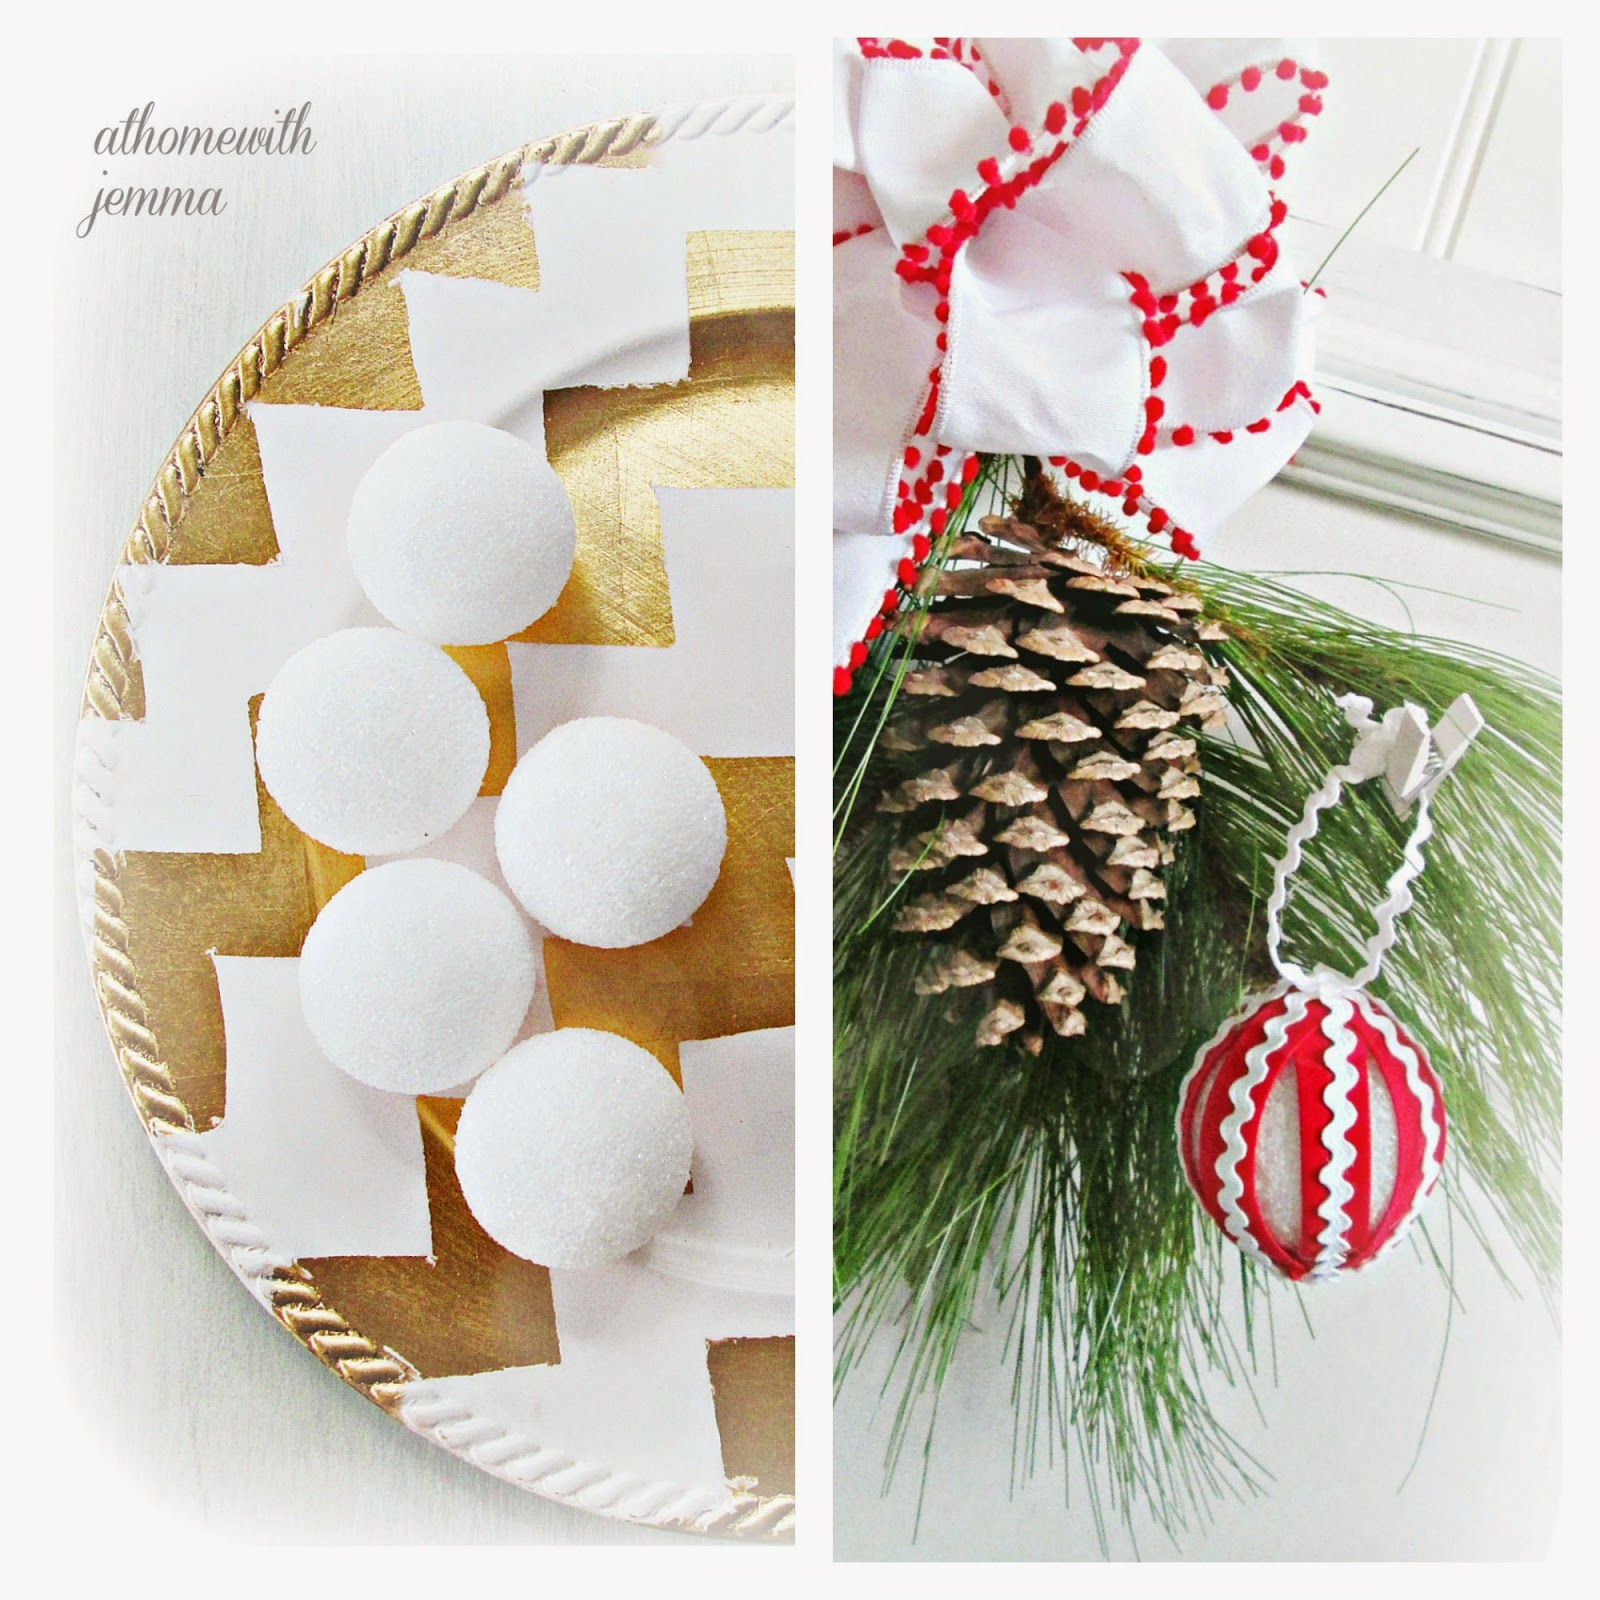 Easy tutorial and decorating tips for creating a nostalgic Christmas